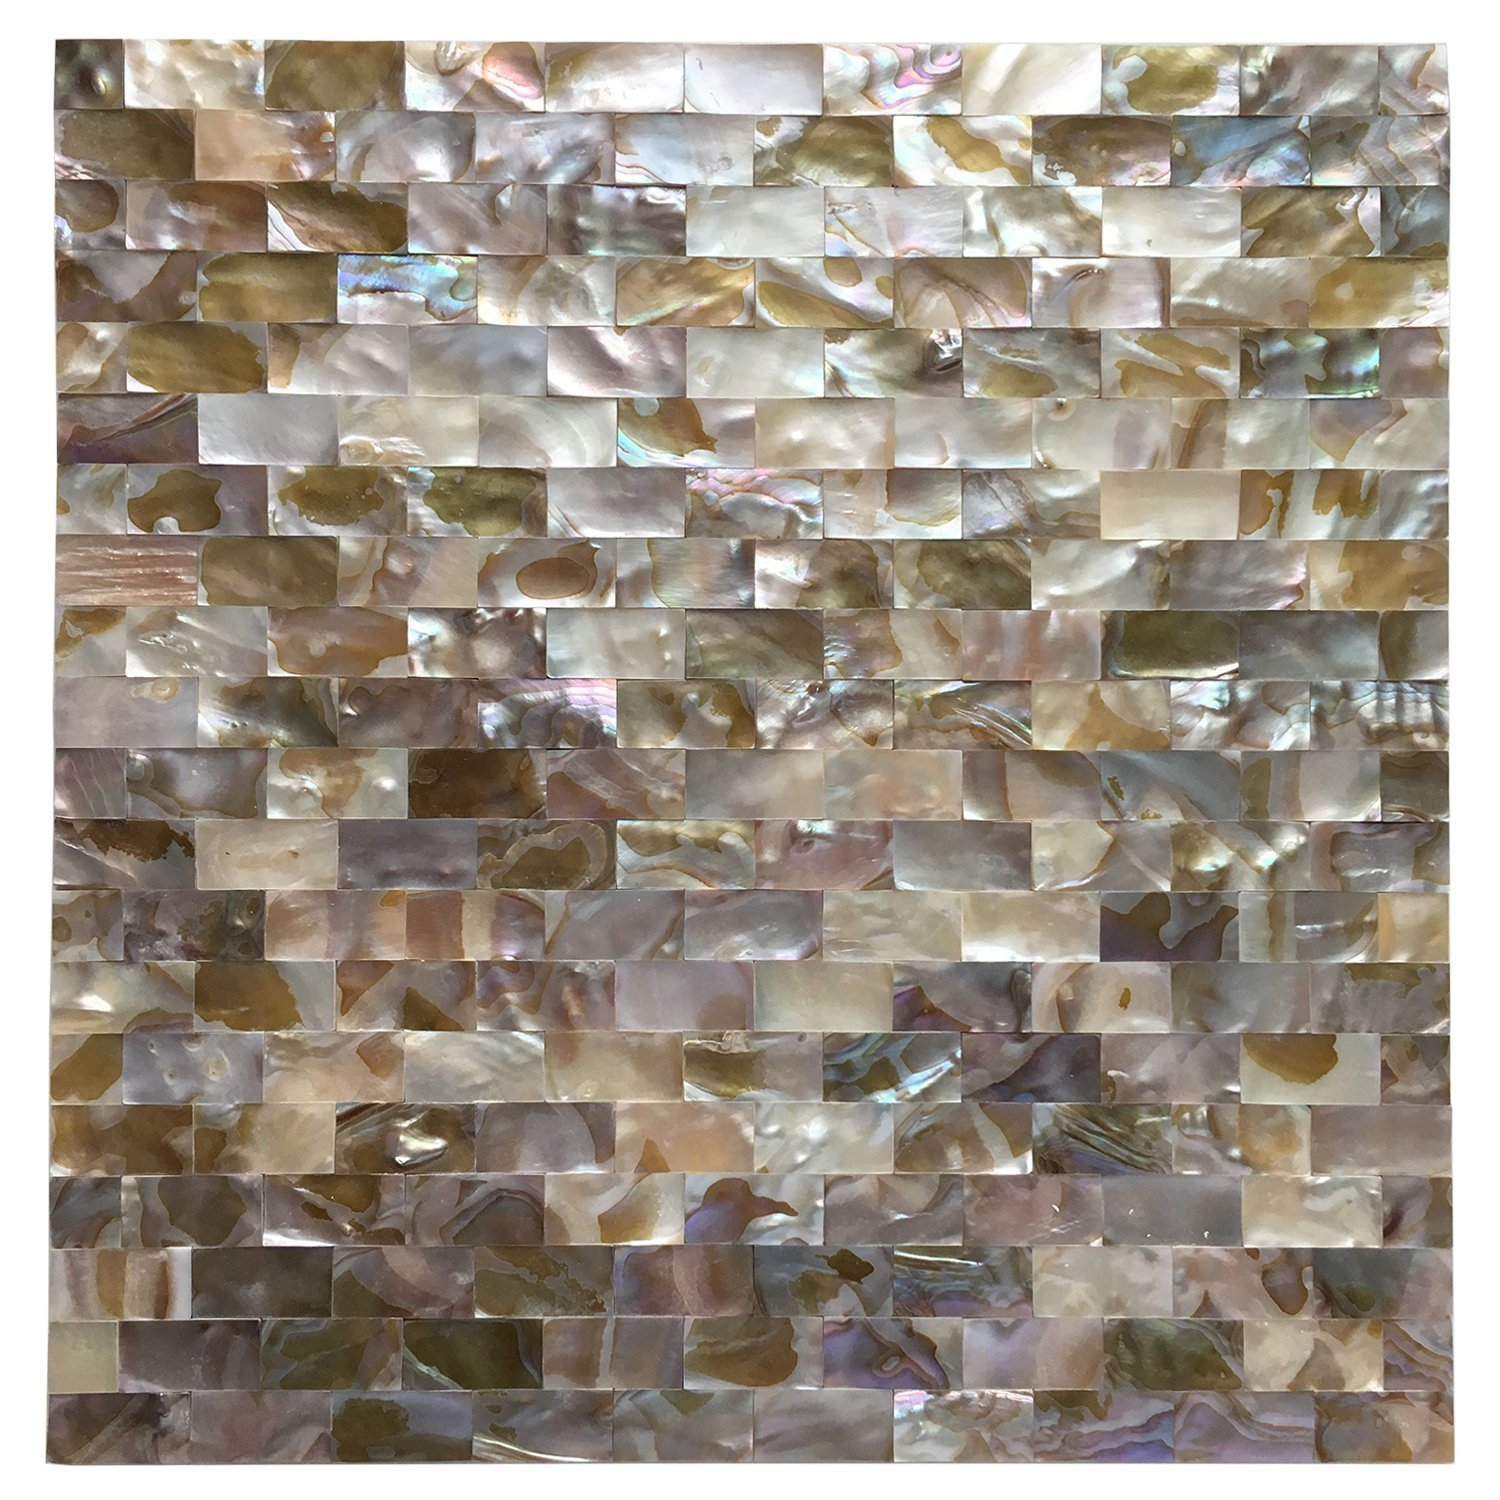 Art3d Peel and Stick Mother of Pearl Shell Mosaic Tile for Kitchen Backsplashes, 12'' x 12'' Coloful Taxtures by Art3d